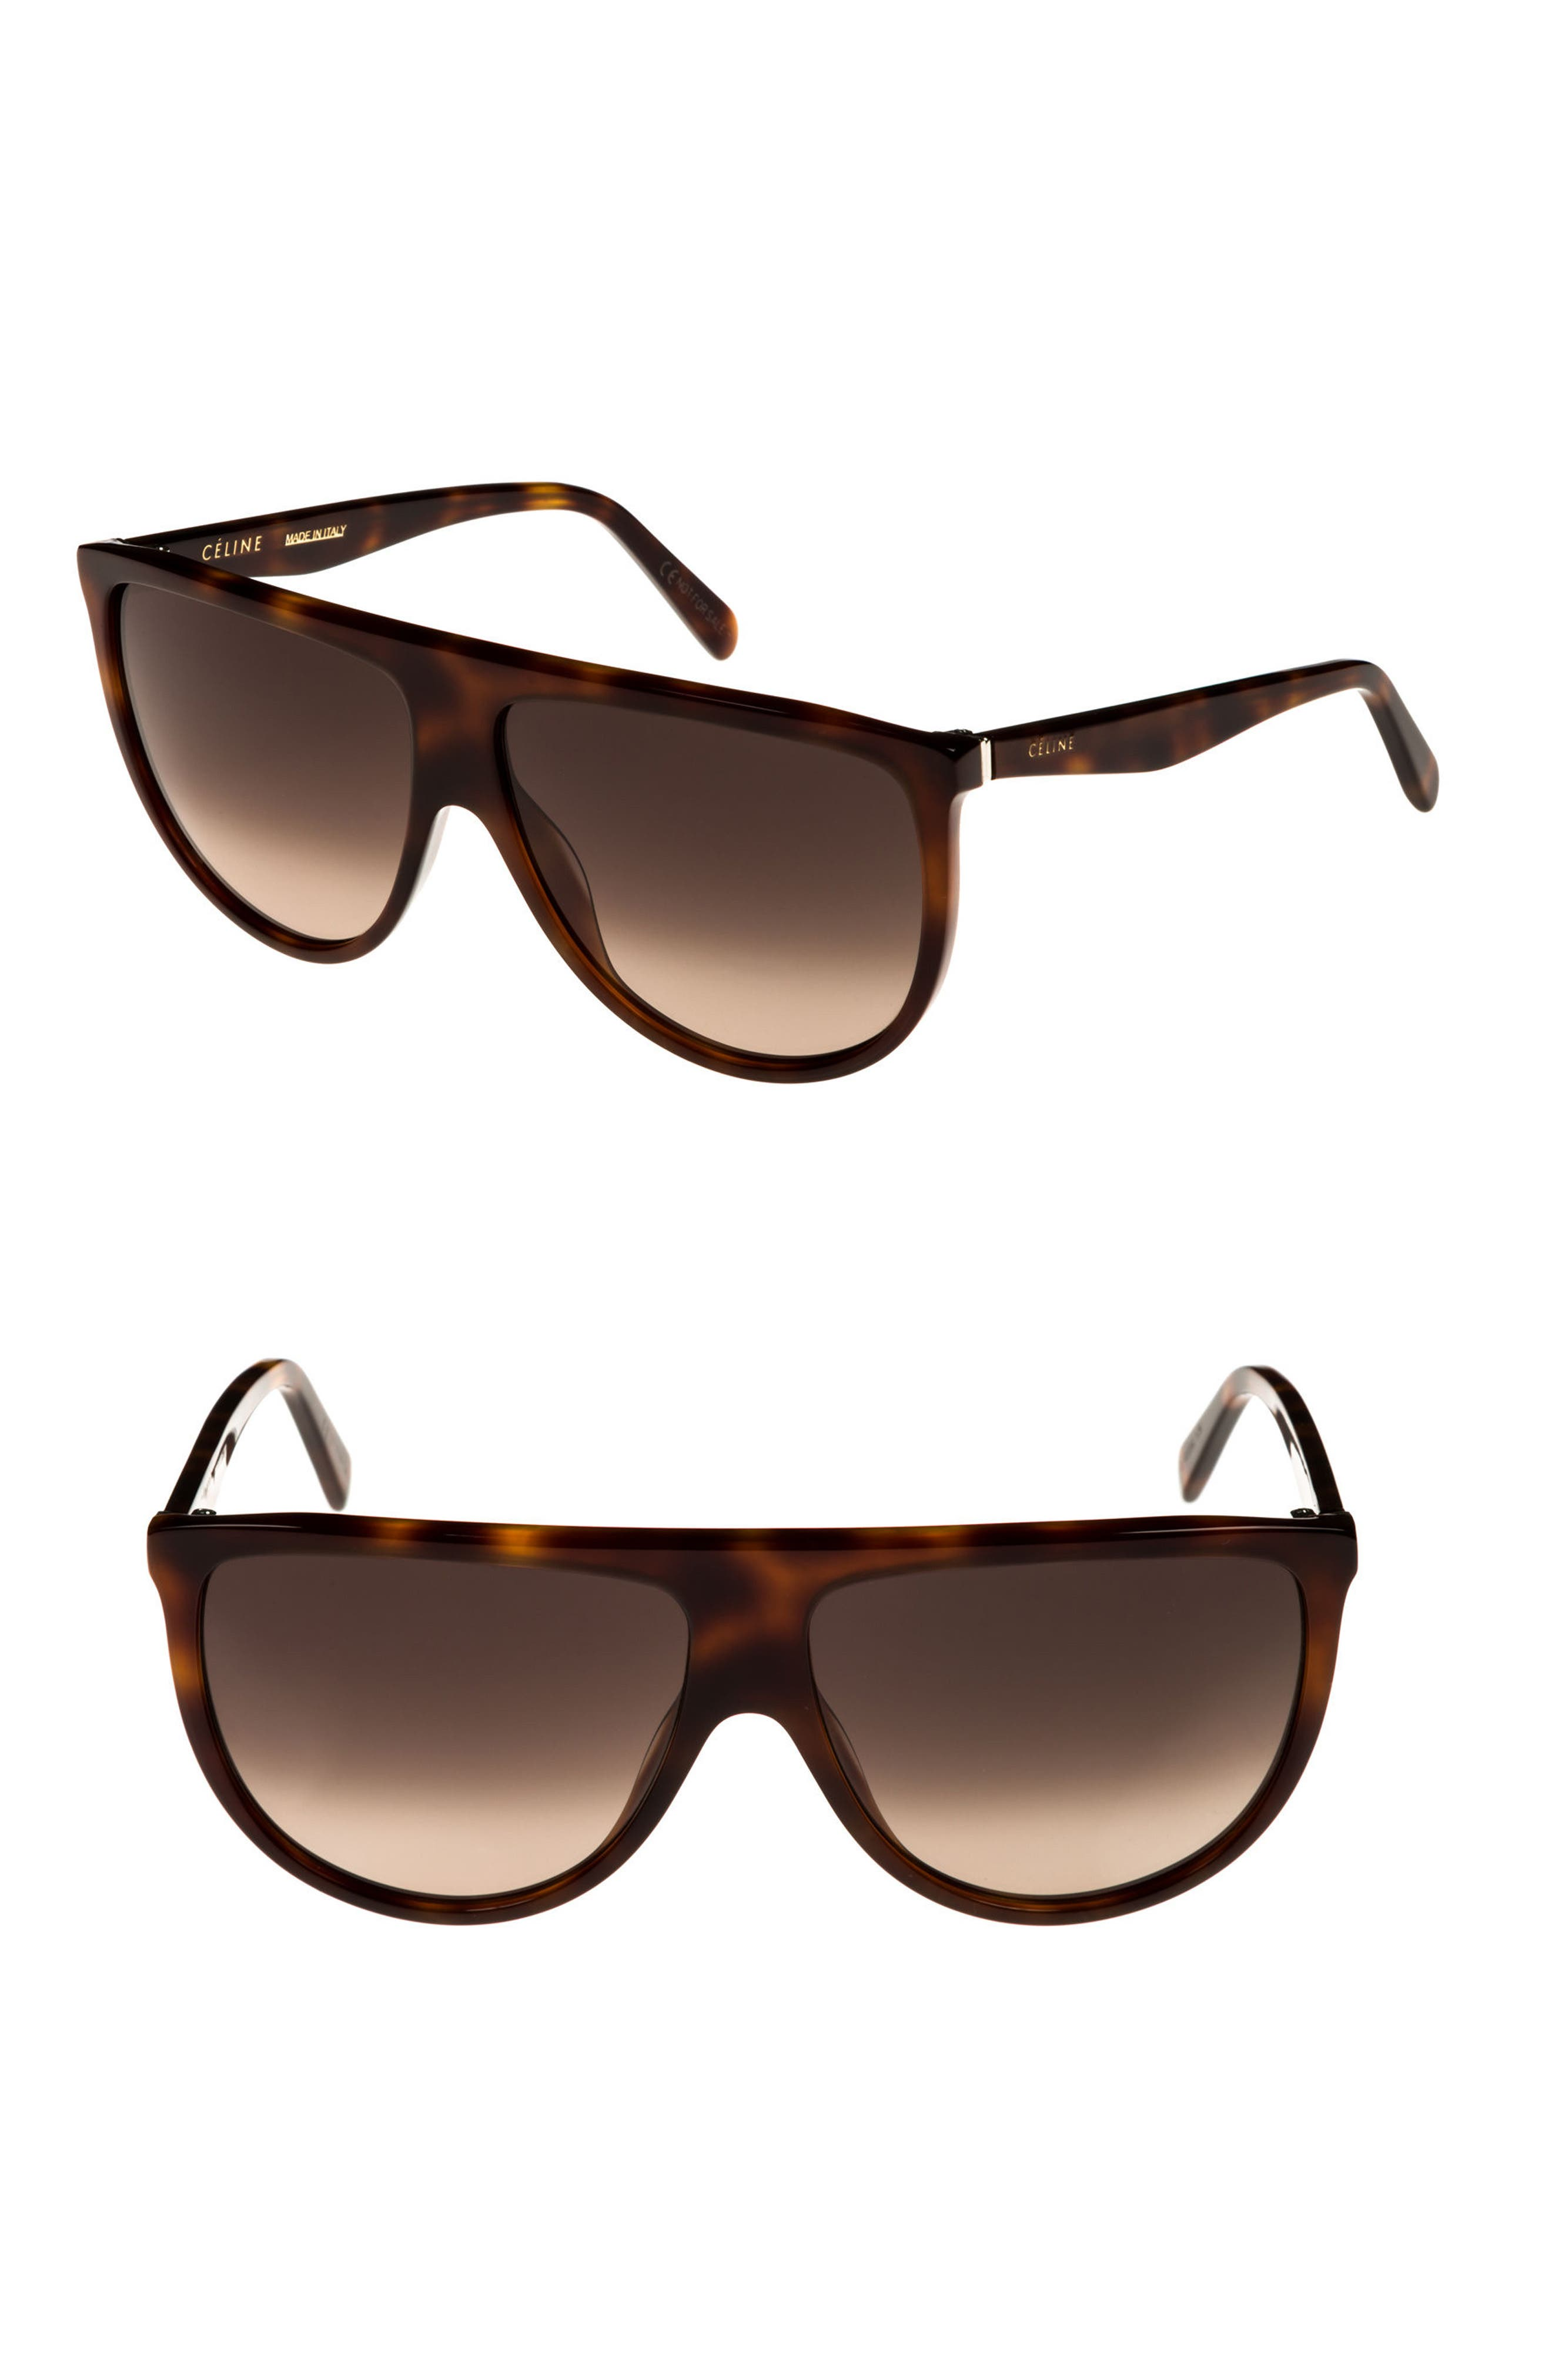 Celine 62Mm Pilot Sunglasses -